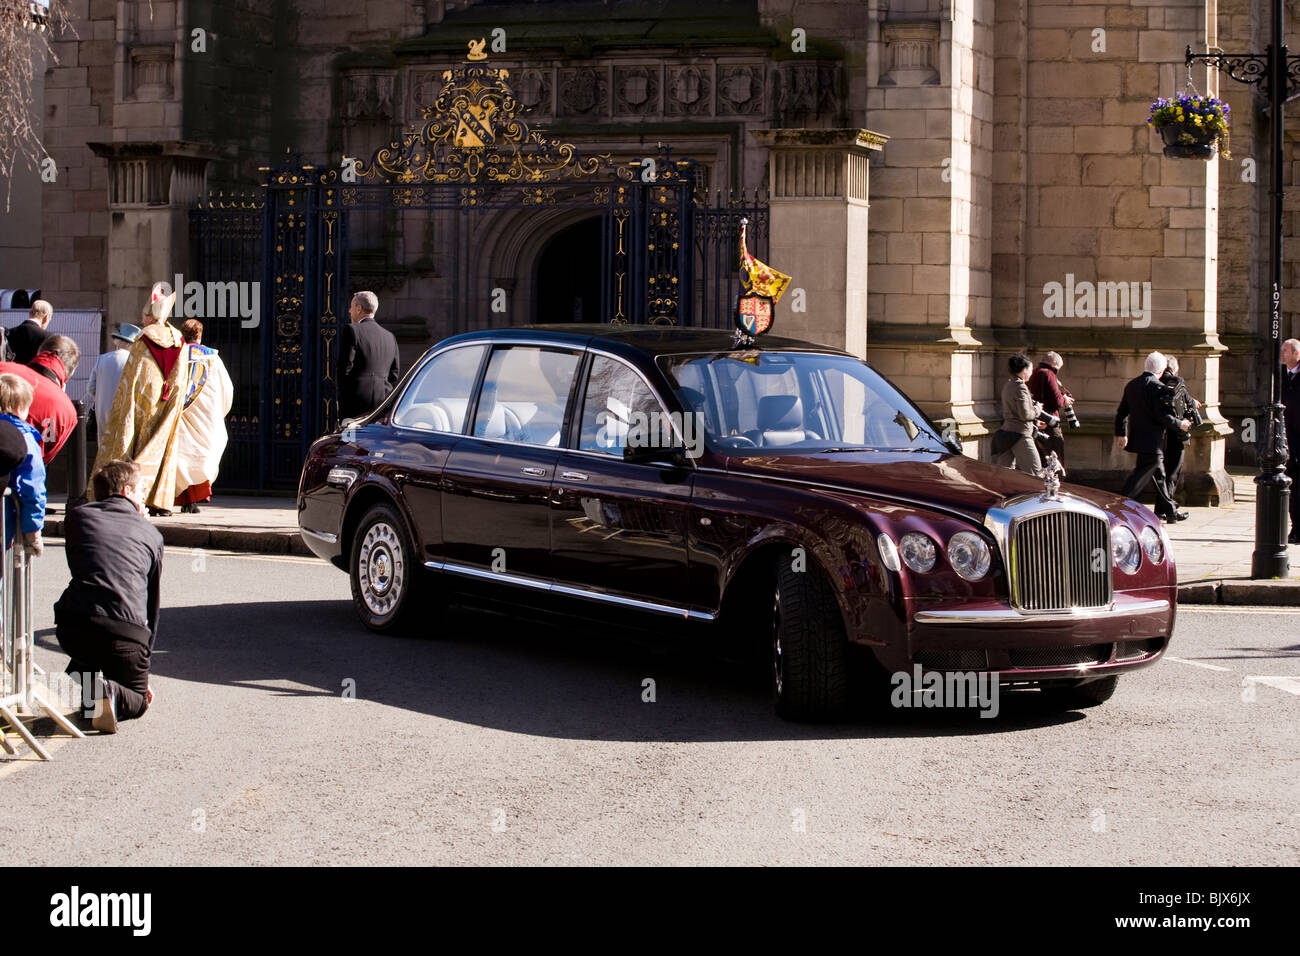 off news of grand foot mulsanne his bentley shows emir in qatar limousine monaco